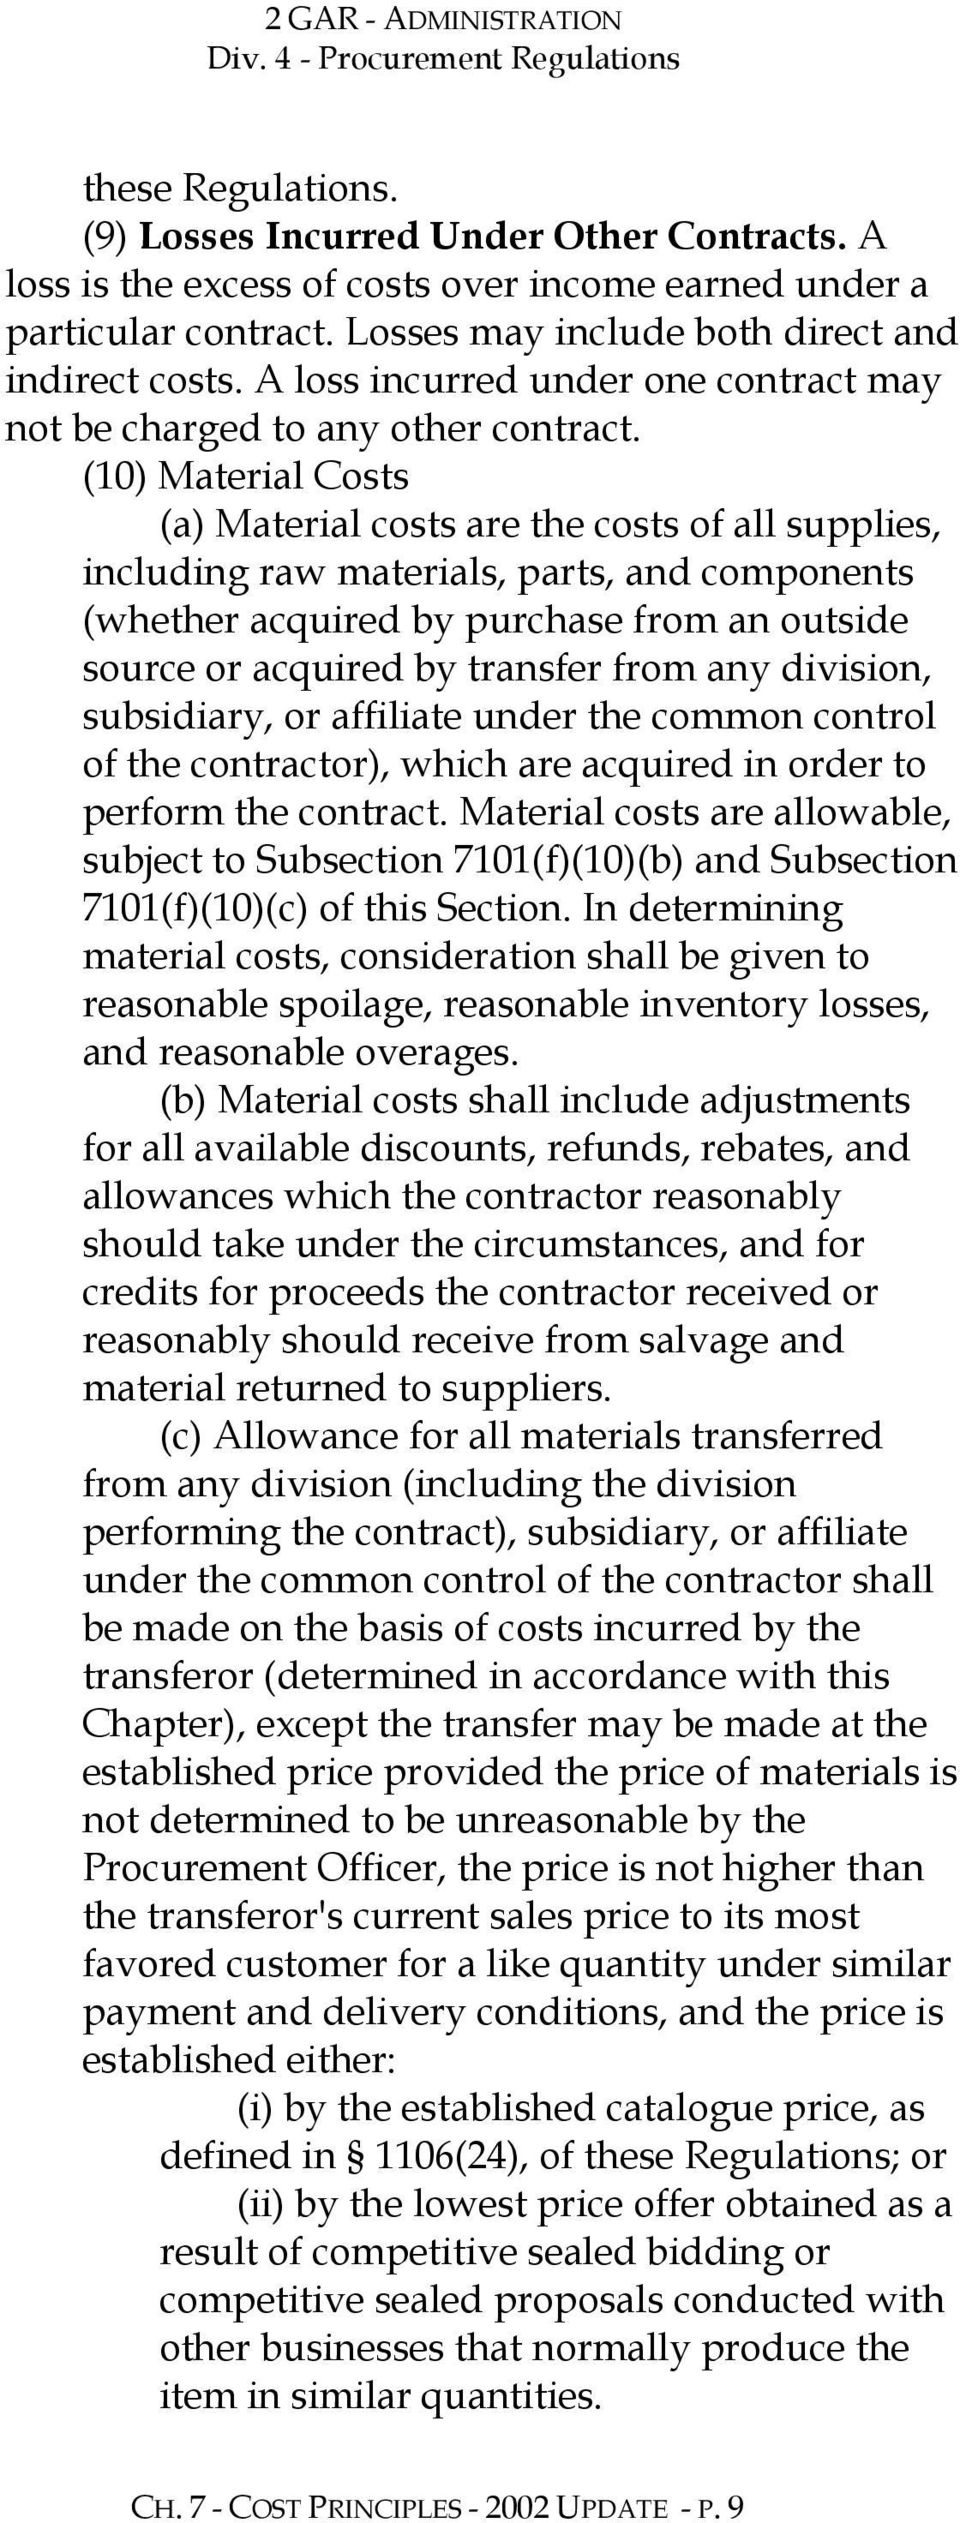 (10) Material Costs (a) Material costs are the costs of all supplies, including raw materials, parts, and components (whether acquired by purchase from an outside source or acquired by transfer from